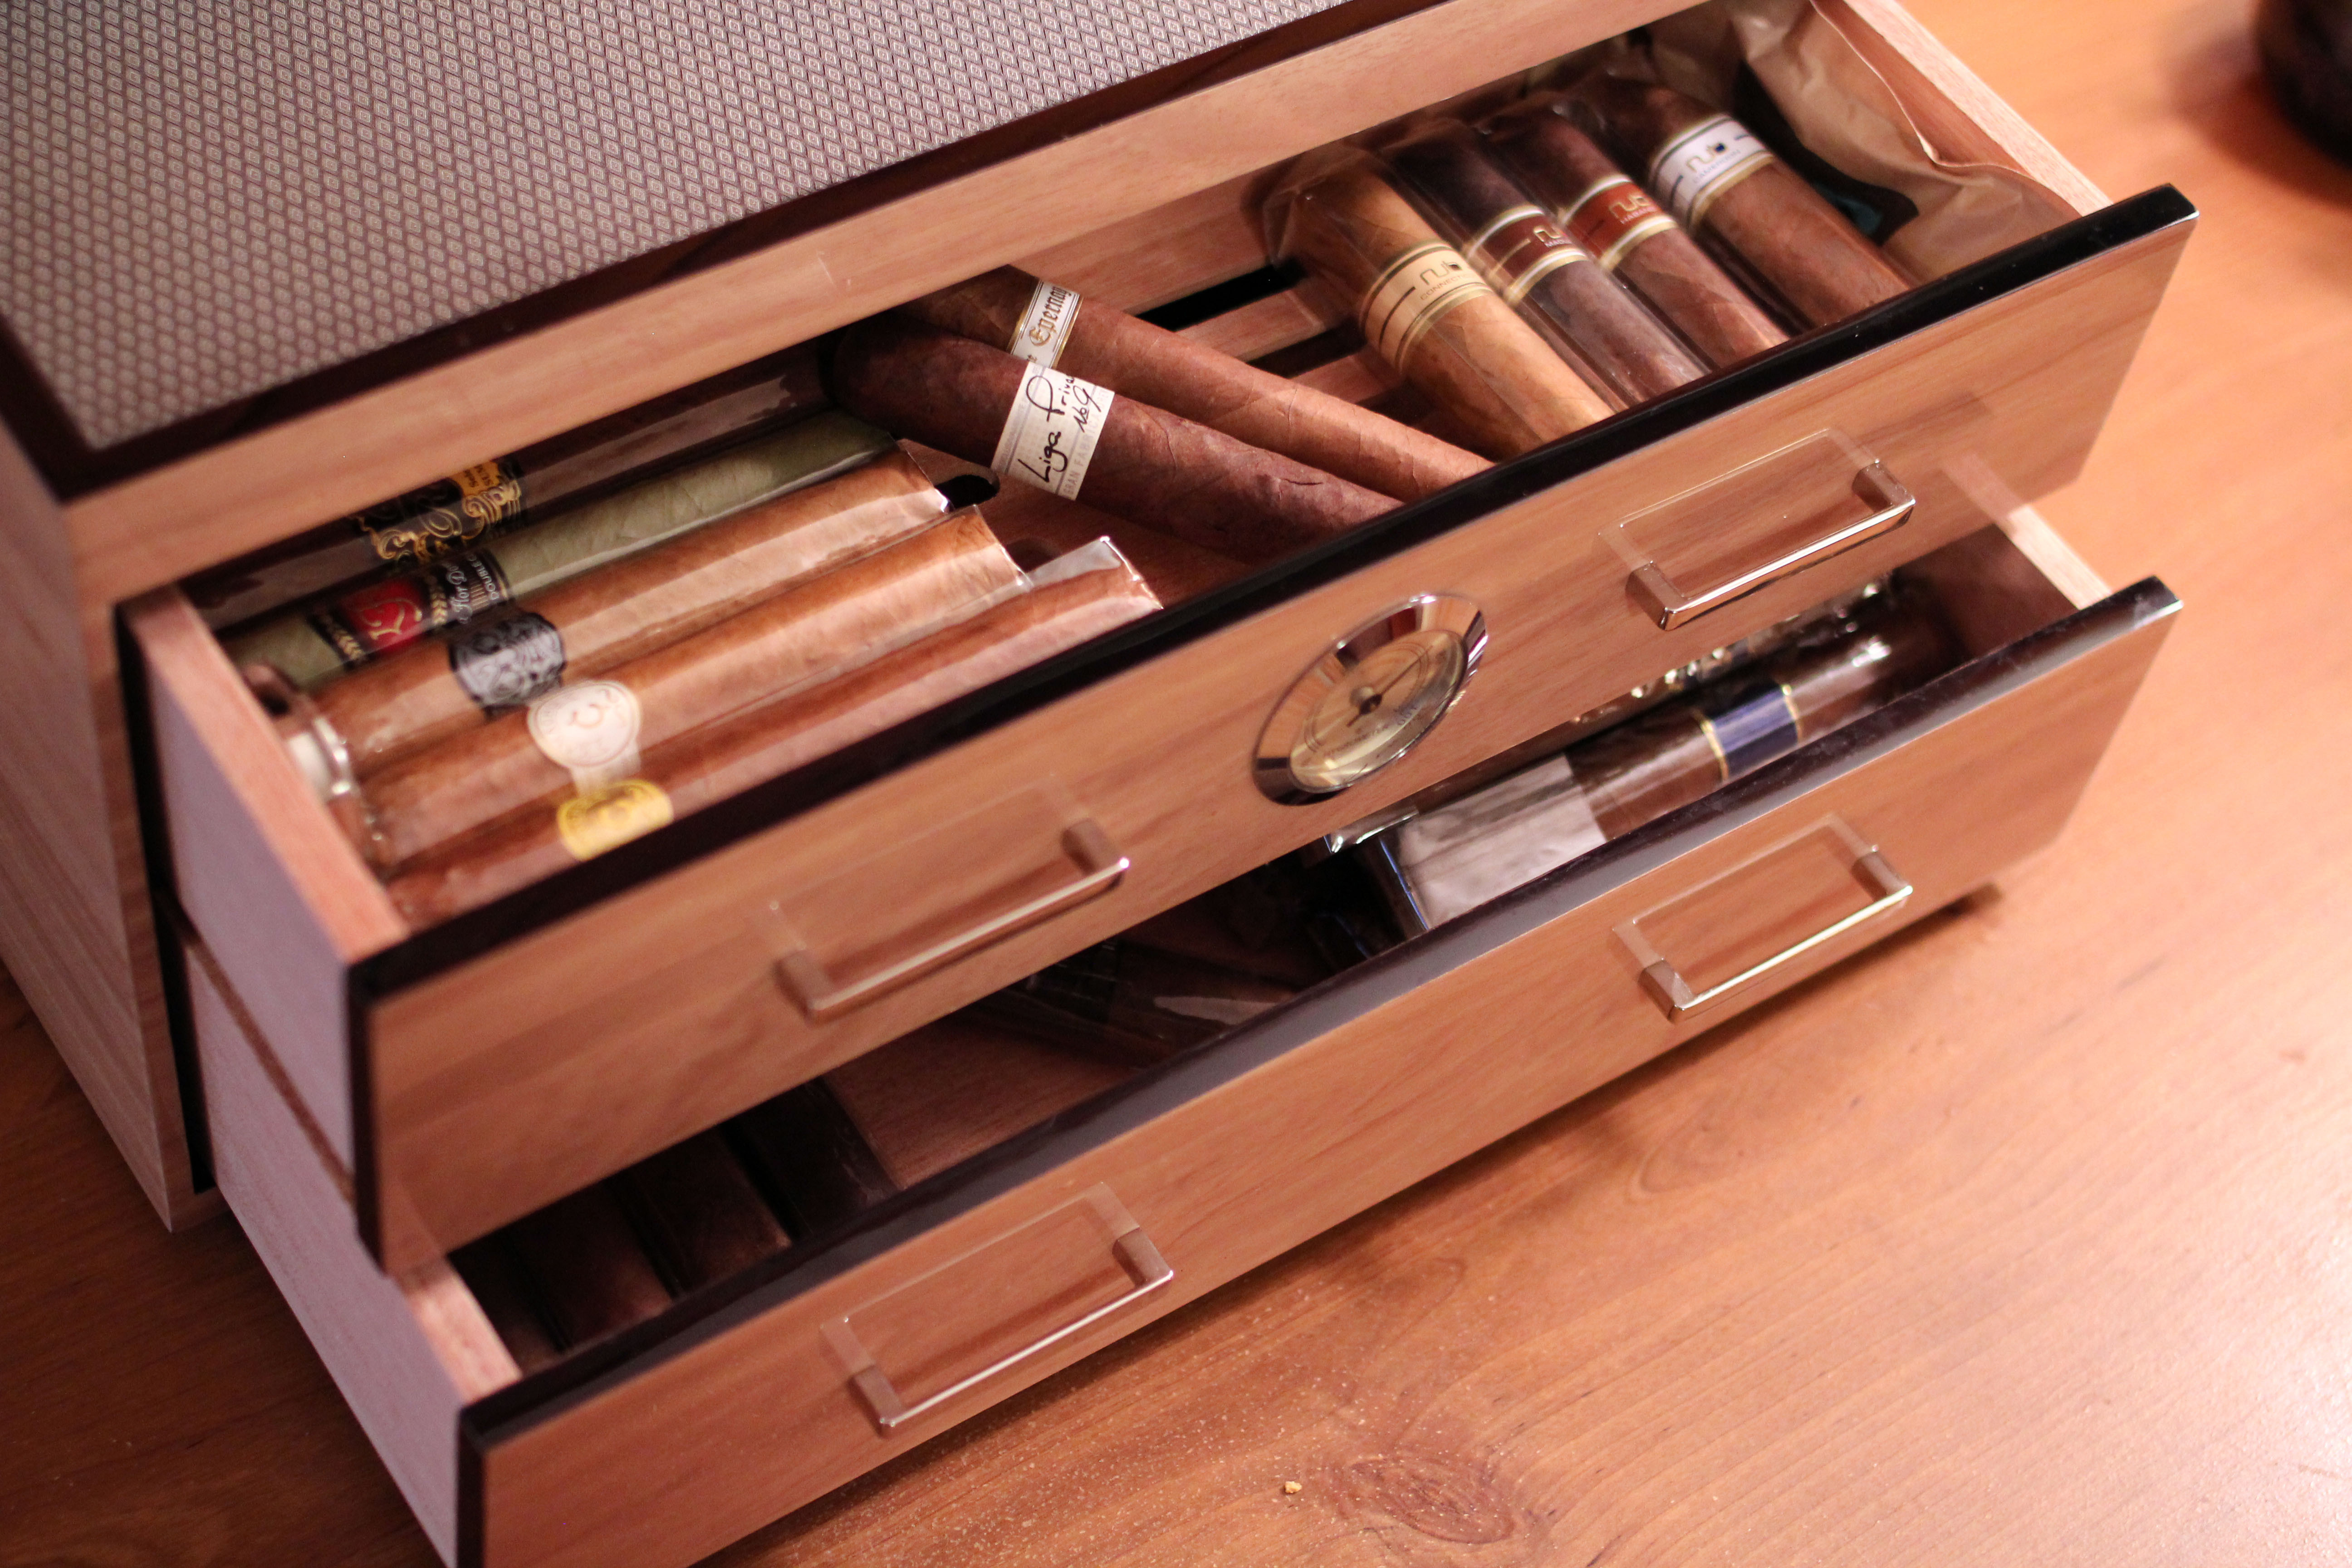 Best ideas about DIY Humidor Plans . Save or Pin Woodworking Plans Humidor Plans Free Download Now.